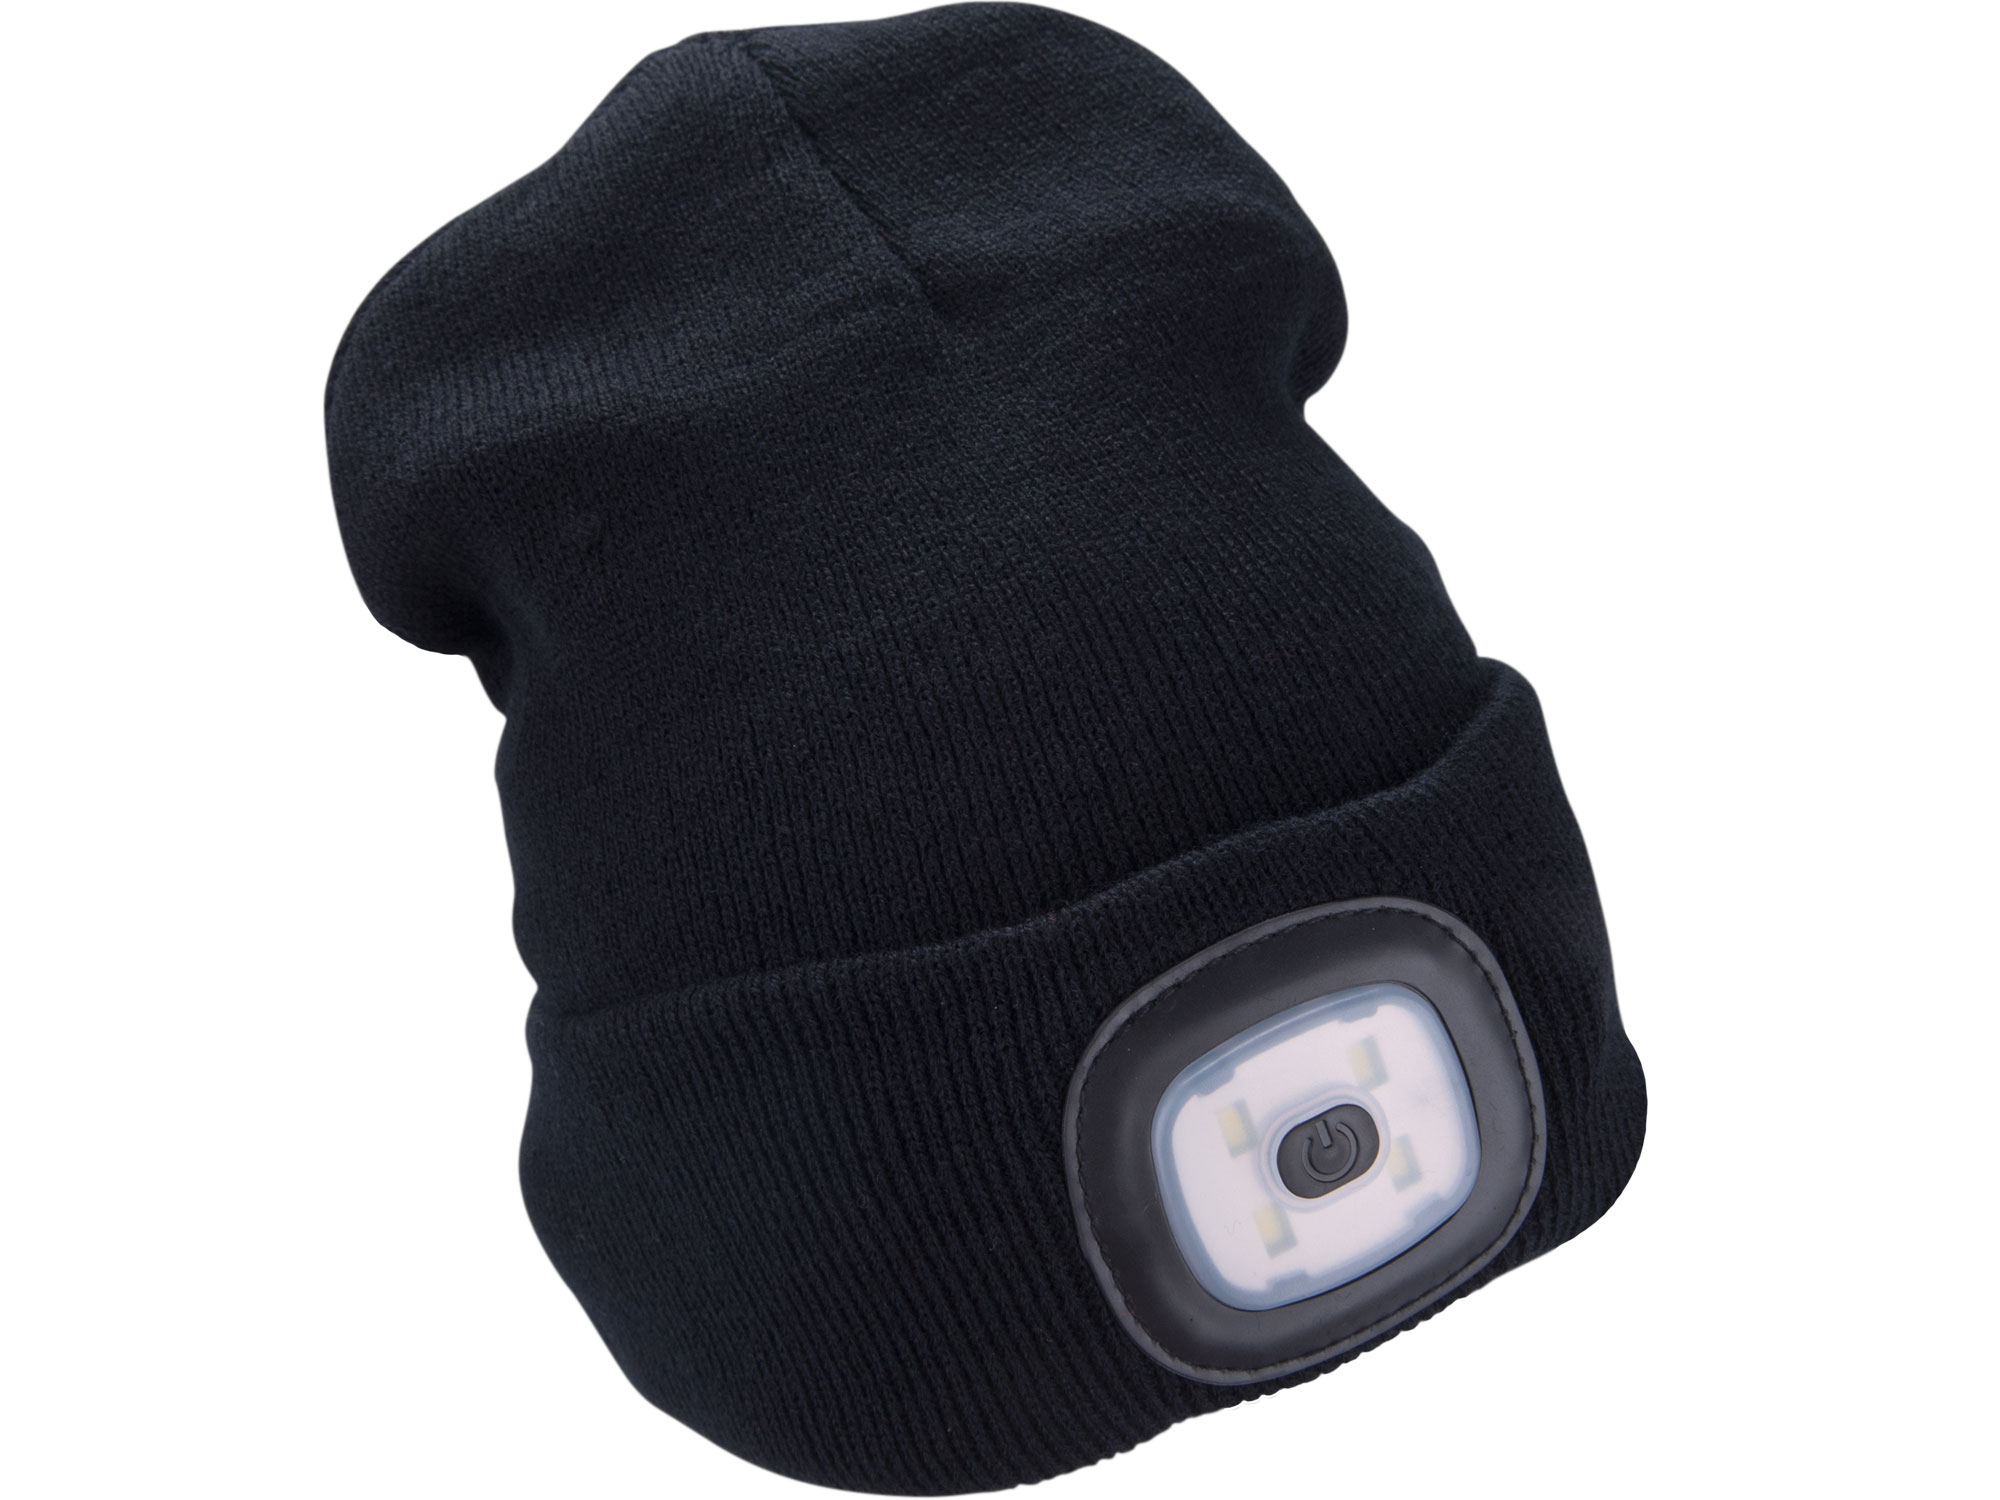 Black beanie with rechargeable LED light, One size fits all